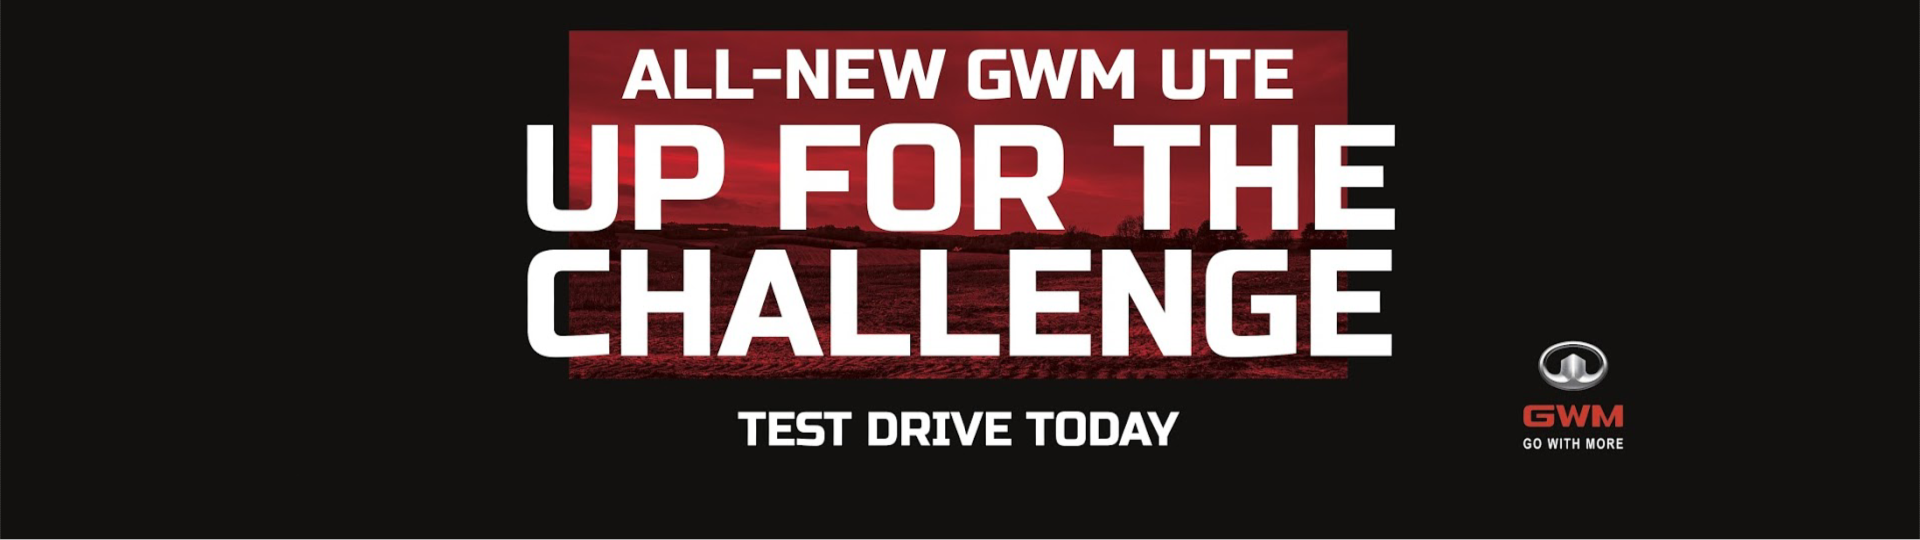 Test Drive the All-New GWM Ute Today!